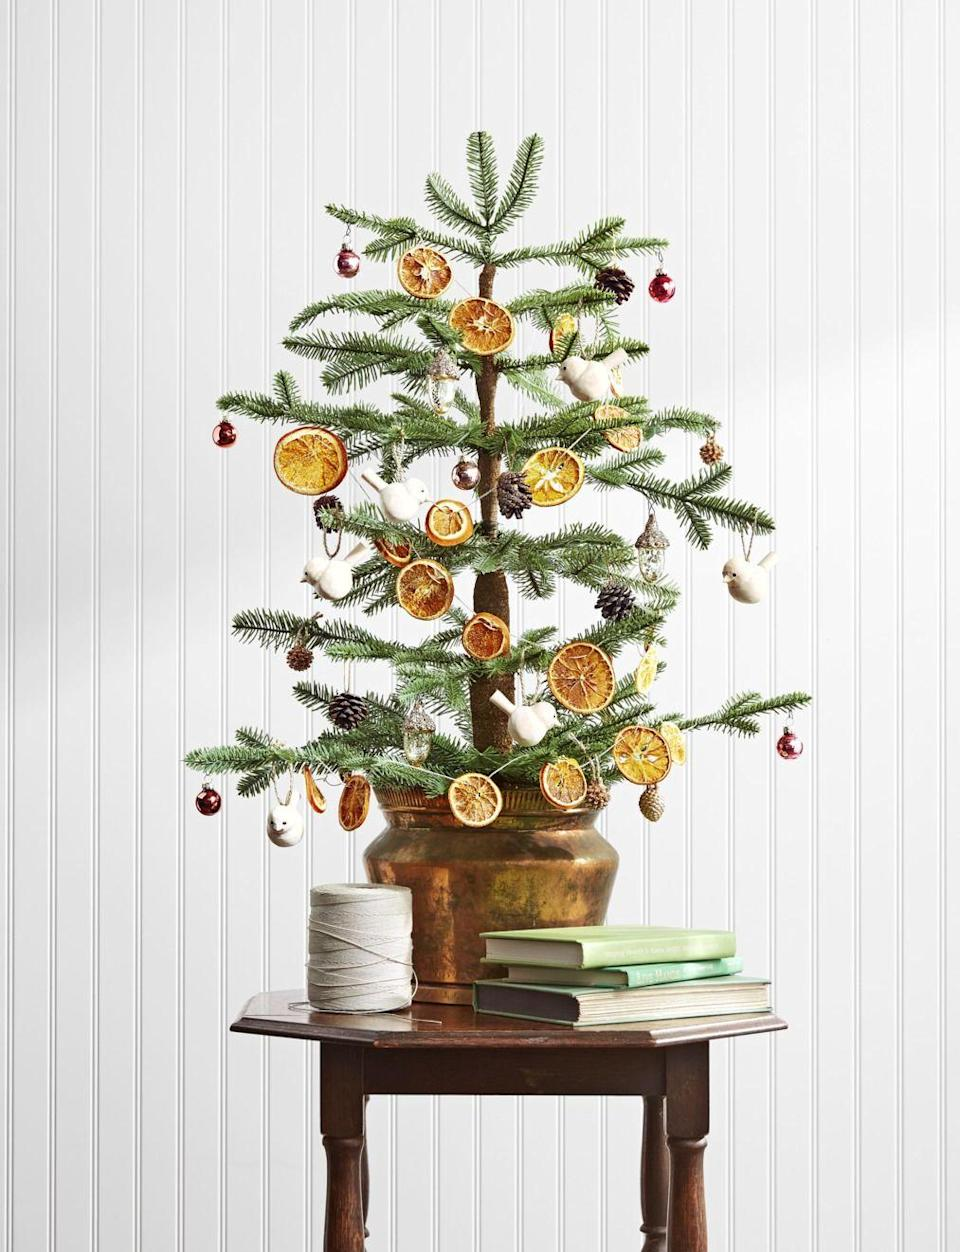 """<p>Citrus ornaments look almost like stained glass when the light shines through them. To string your own strand, all you need are navel and blood oranges, parchment paper, two cookie sheets, jute or natural twine, a skewer or nail, and decorative hooks. </p><p><strong>Make the Ornaments:</strong></p><p>1. Preheat oven to 250°F. </p><p>2. Cut oranges crosswise into 1/4-inch slices (four oranges make a six-foot garland). </p><p>3. Line cookie sheets with parchment paper. Pat orange slices dry with paper towels, and place them on cookie sheets in a single layer. </p><p>4. Bake for approximately 3 hours or until dry. (To ensure the slices dry flat, turn them over at the midway mark.) Remove from oven. </p><p>5. Using a skewer or nail, poke two holes into the top of each orange slice. </p><p>6. Thread twine through each hole, evenly spacing the oranges on the garland. Tie off each end with a loop, and hang from hooks.</p><p><a class=""""link rapid-noclick-resp"""" href=""""https://www.amazon.com/çokçerez-Dried-orange-slices-cokcerez/dp/B092JK1Y4K/ref=sr_1_1_sspa?tag=syn-yahoo-20&ascsubtag=%5Bartid%7C10050.g.1070%5Bsrc%7Cyahoo-us"""" rel=""""nofollow noopener"""" target=""""_blank"""" data-ylk=""""slk:SHOP DRIED ORANGE SLICES"""">SHOP DRIED ORANGE SLICES</a></p>"""